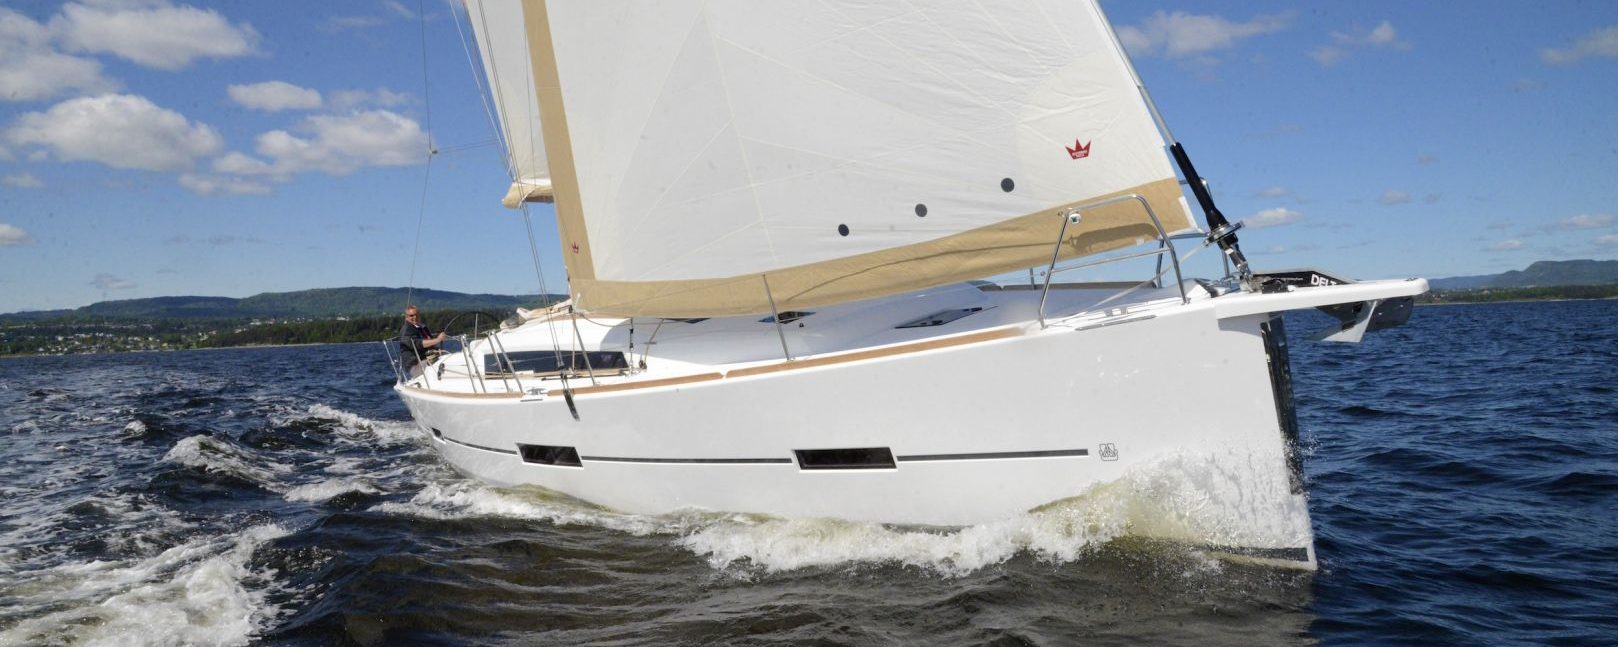 Dufour Yachts 412 under way